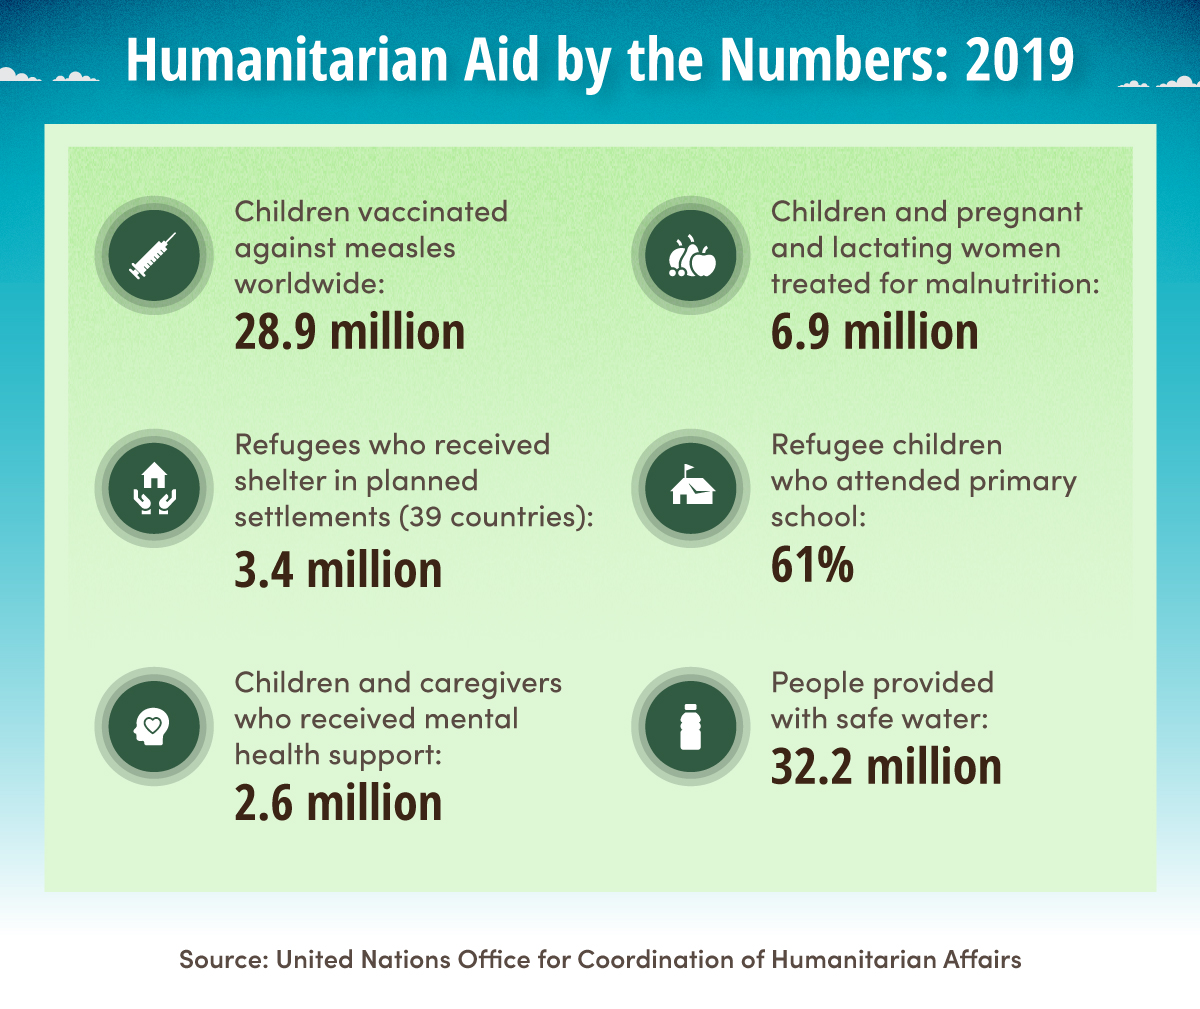 Humanitarian aid by the numbers